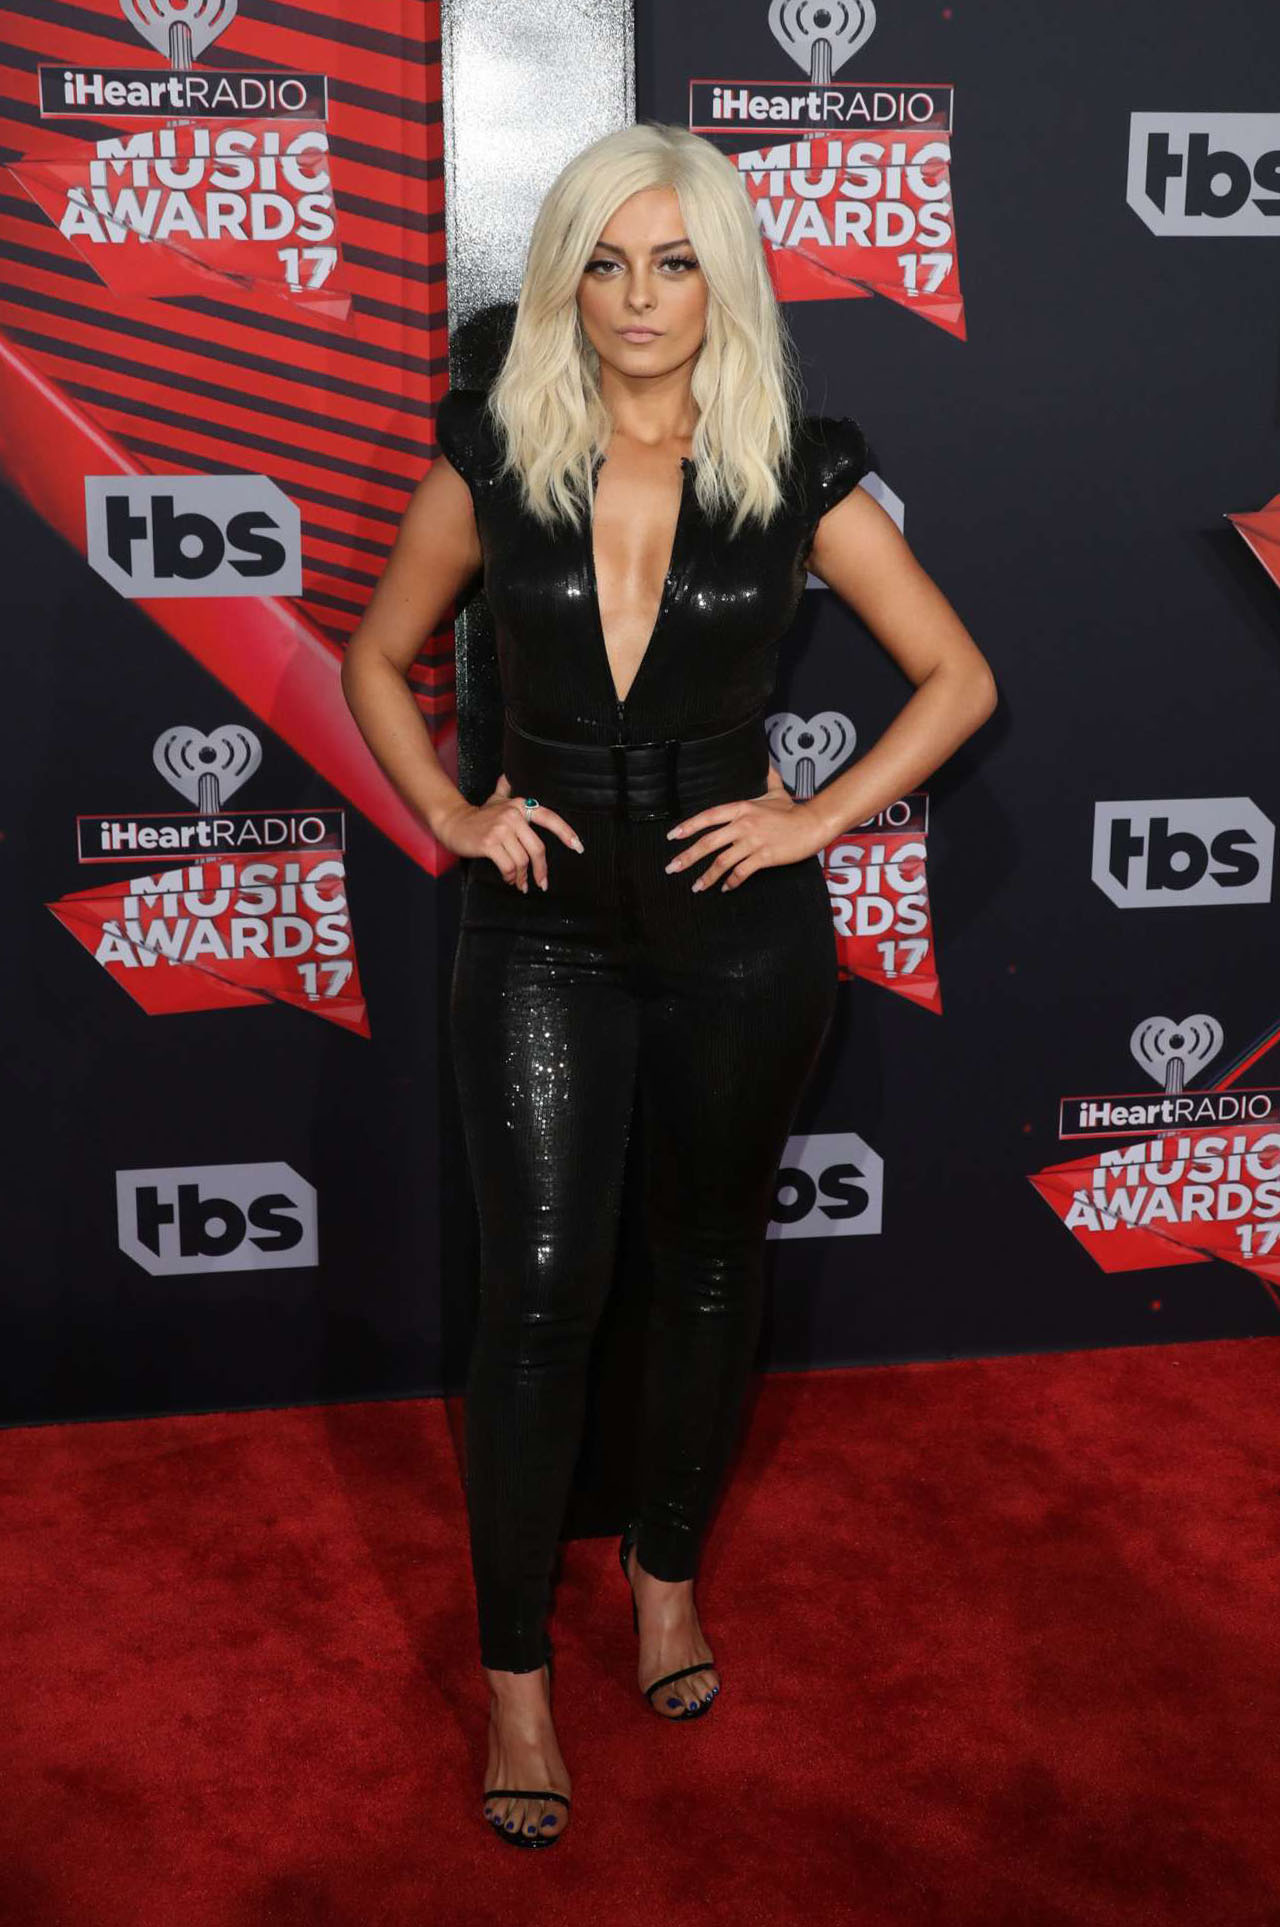 bebe-rexha-at-iheartradio-music-awards-in-los-angeles-a-3-5-2017-3